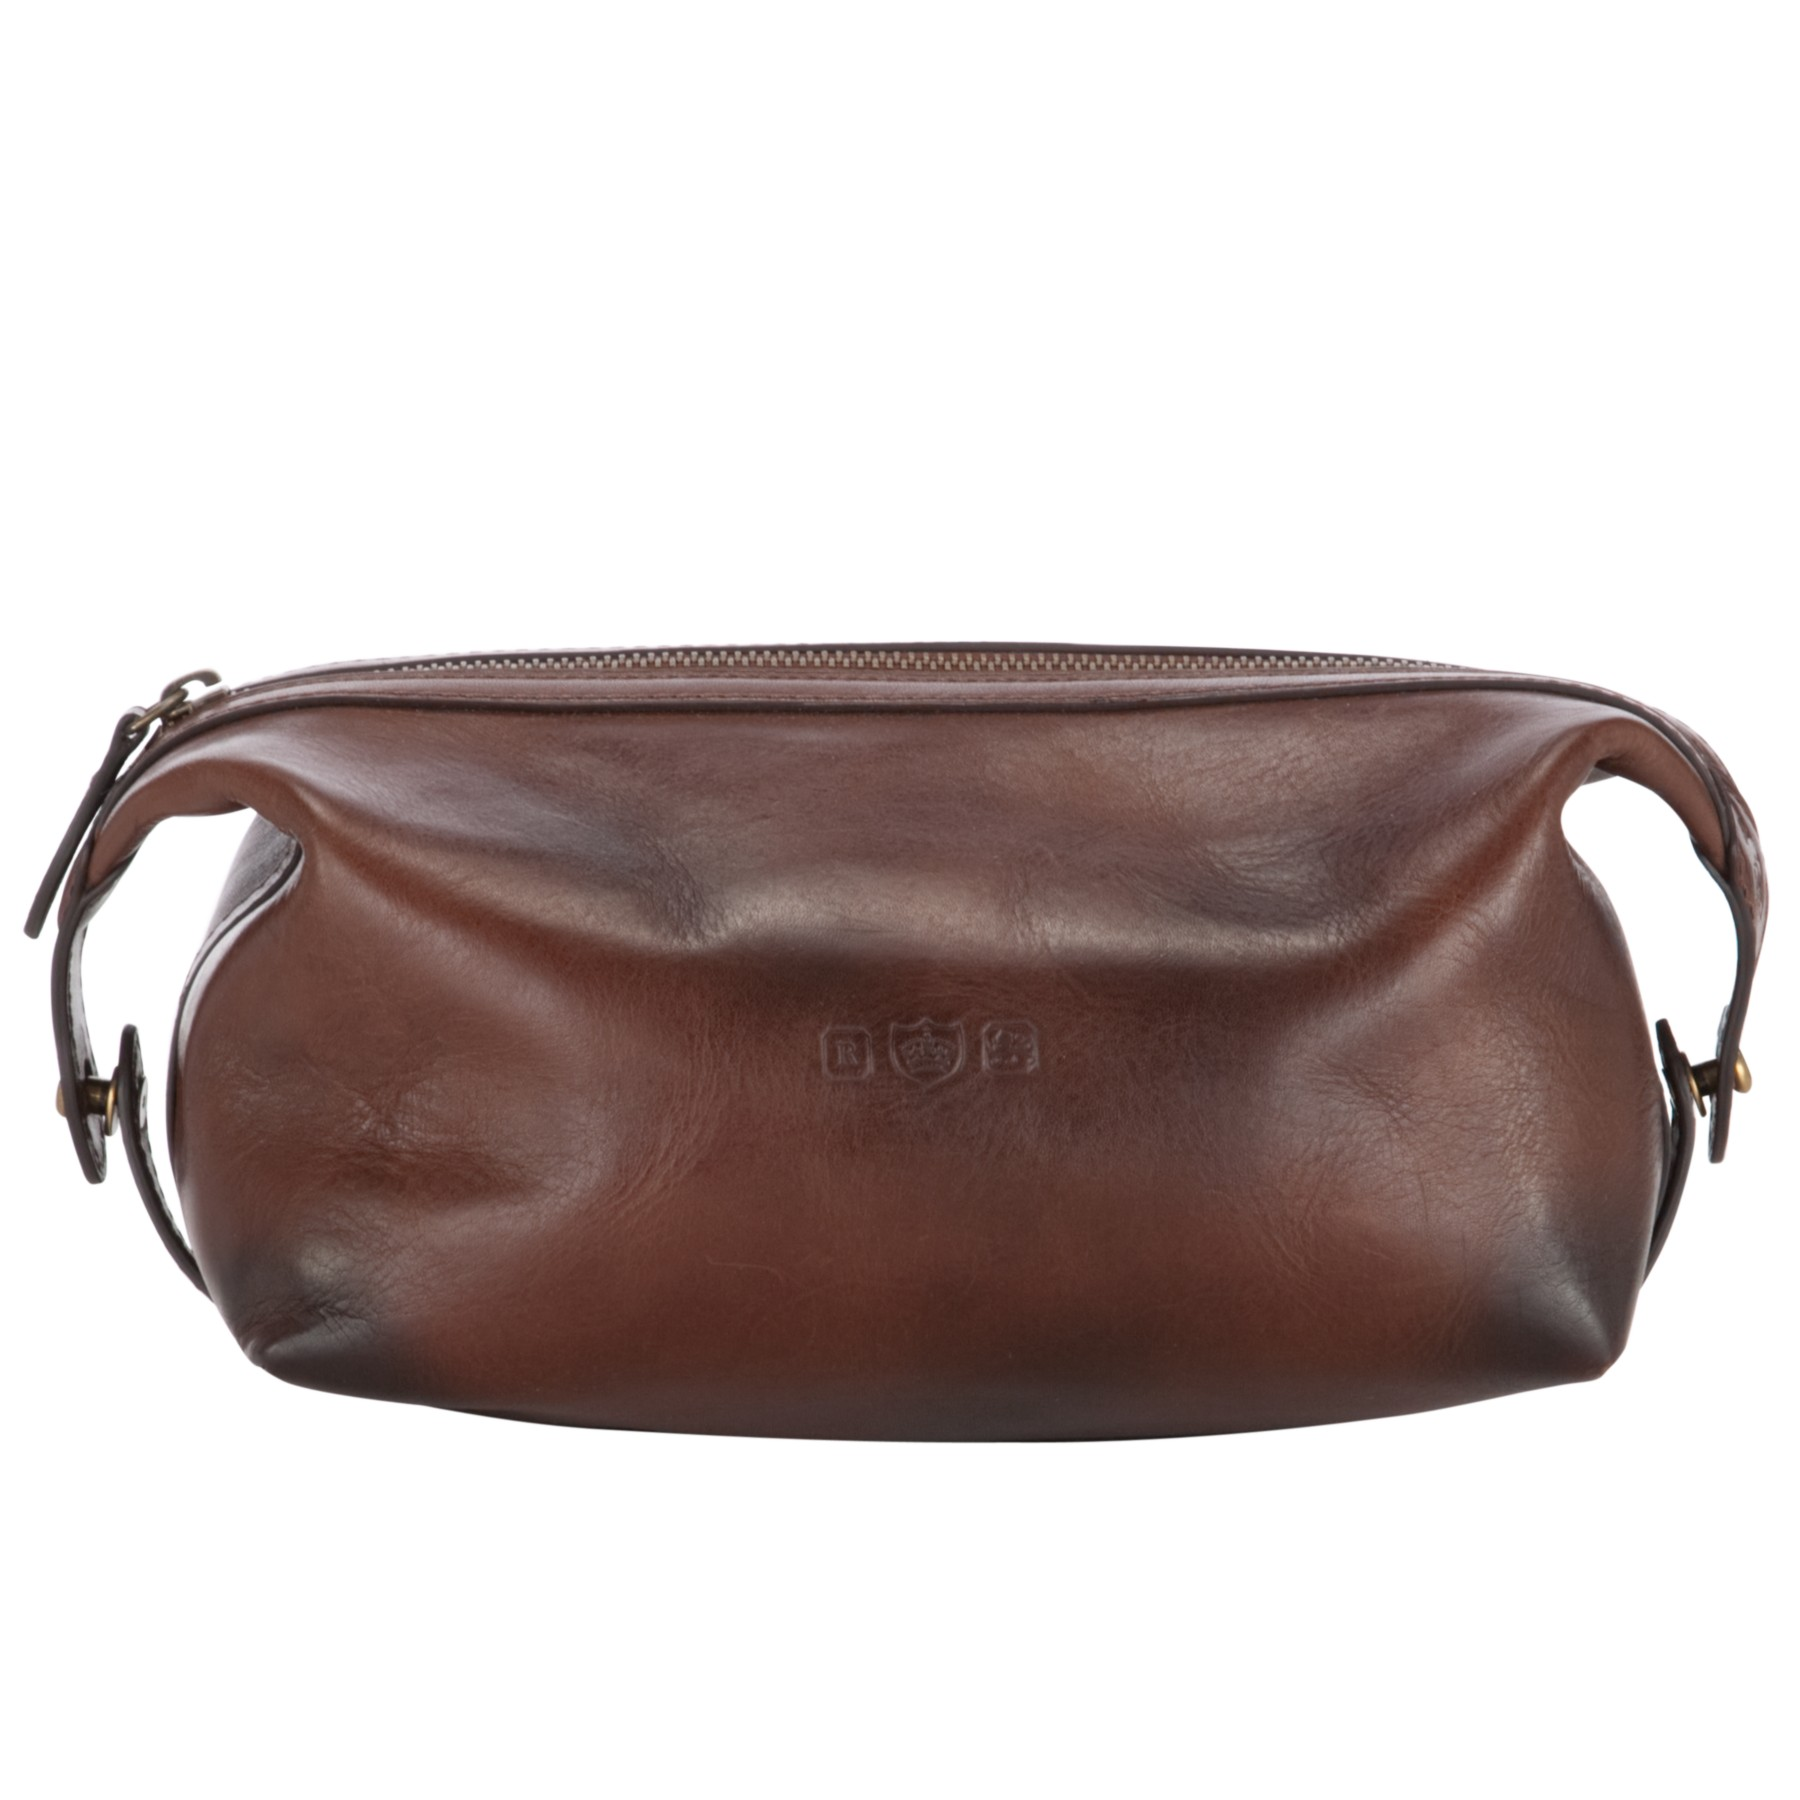 3220d865c0 Polo Ralph Lauren Leather Wash Bag in Brown for Men - Lyst